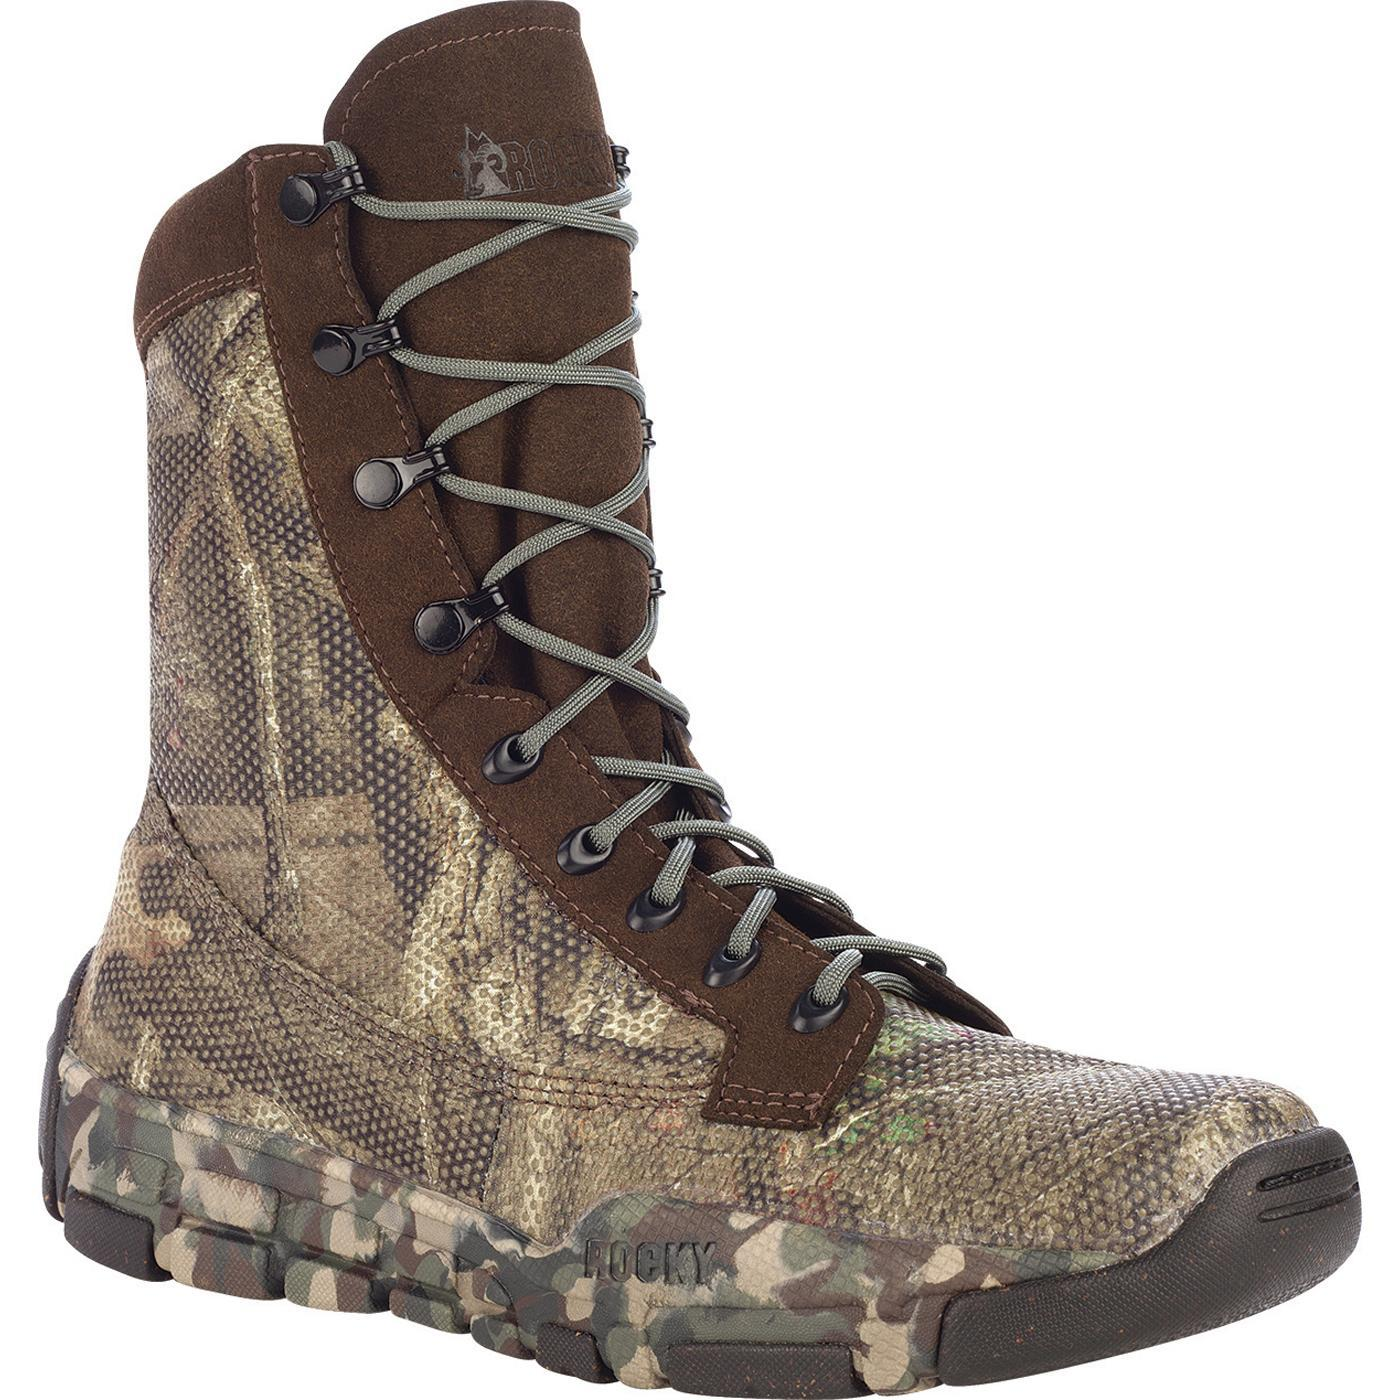 Official Merrell Site - Free Shipping & Returns! Be prepared with womens hiking boots for all your hikes. Whether you're going on a light hike, backpacking, or an intense excursion, Merrell hiking boots & shoes are made for everything you encounter. Get comfort, waterproofing, traction, & more!